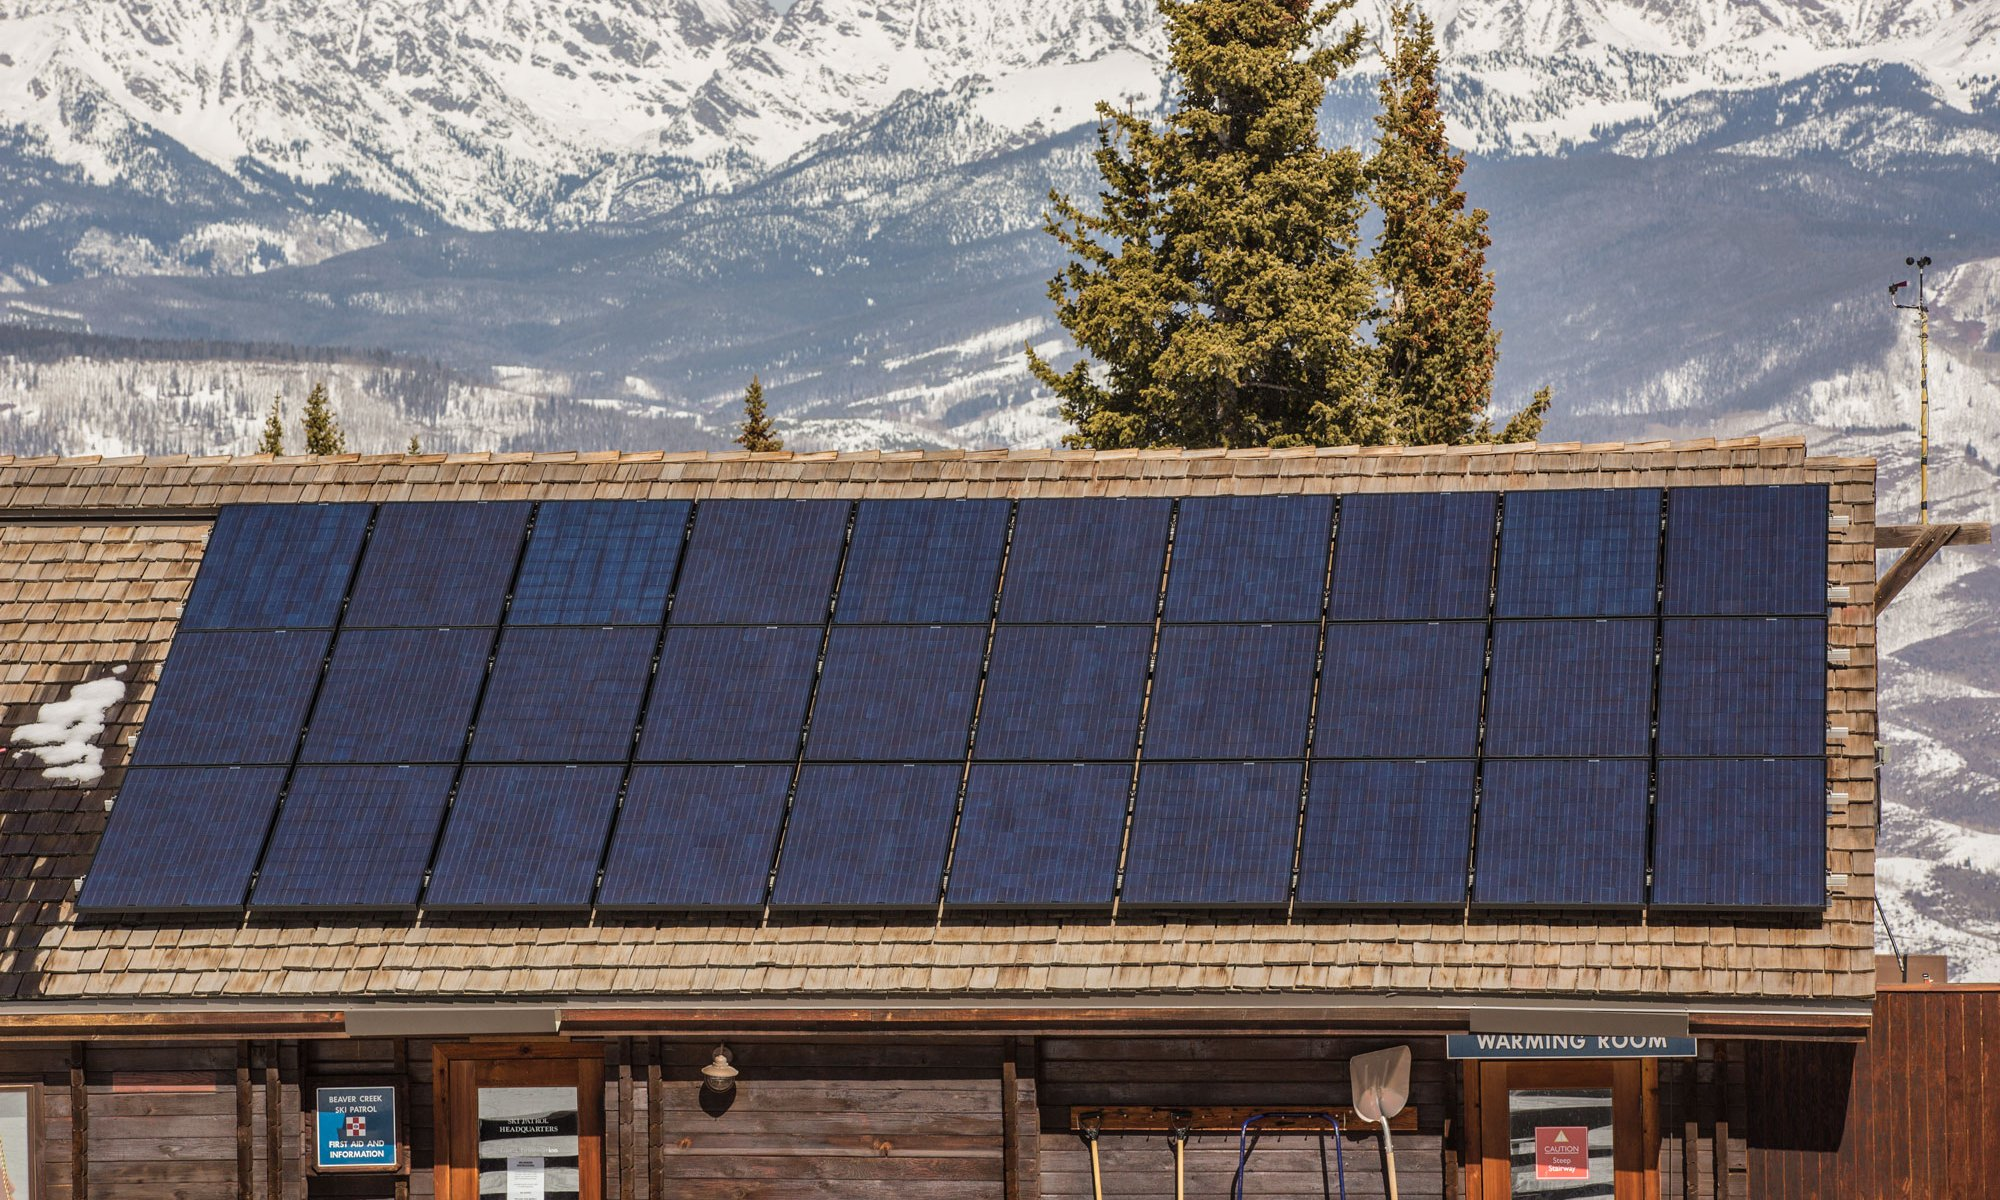 Beaver Creek solar panel. Vail Resorts Announces Long-Term Wind Energy Contract And Plan To Eliminate Conventional Single-Use Dining Plastics In Its 'Commitment To Zero'. Photo: Vail Resorts.